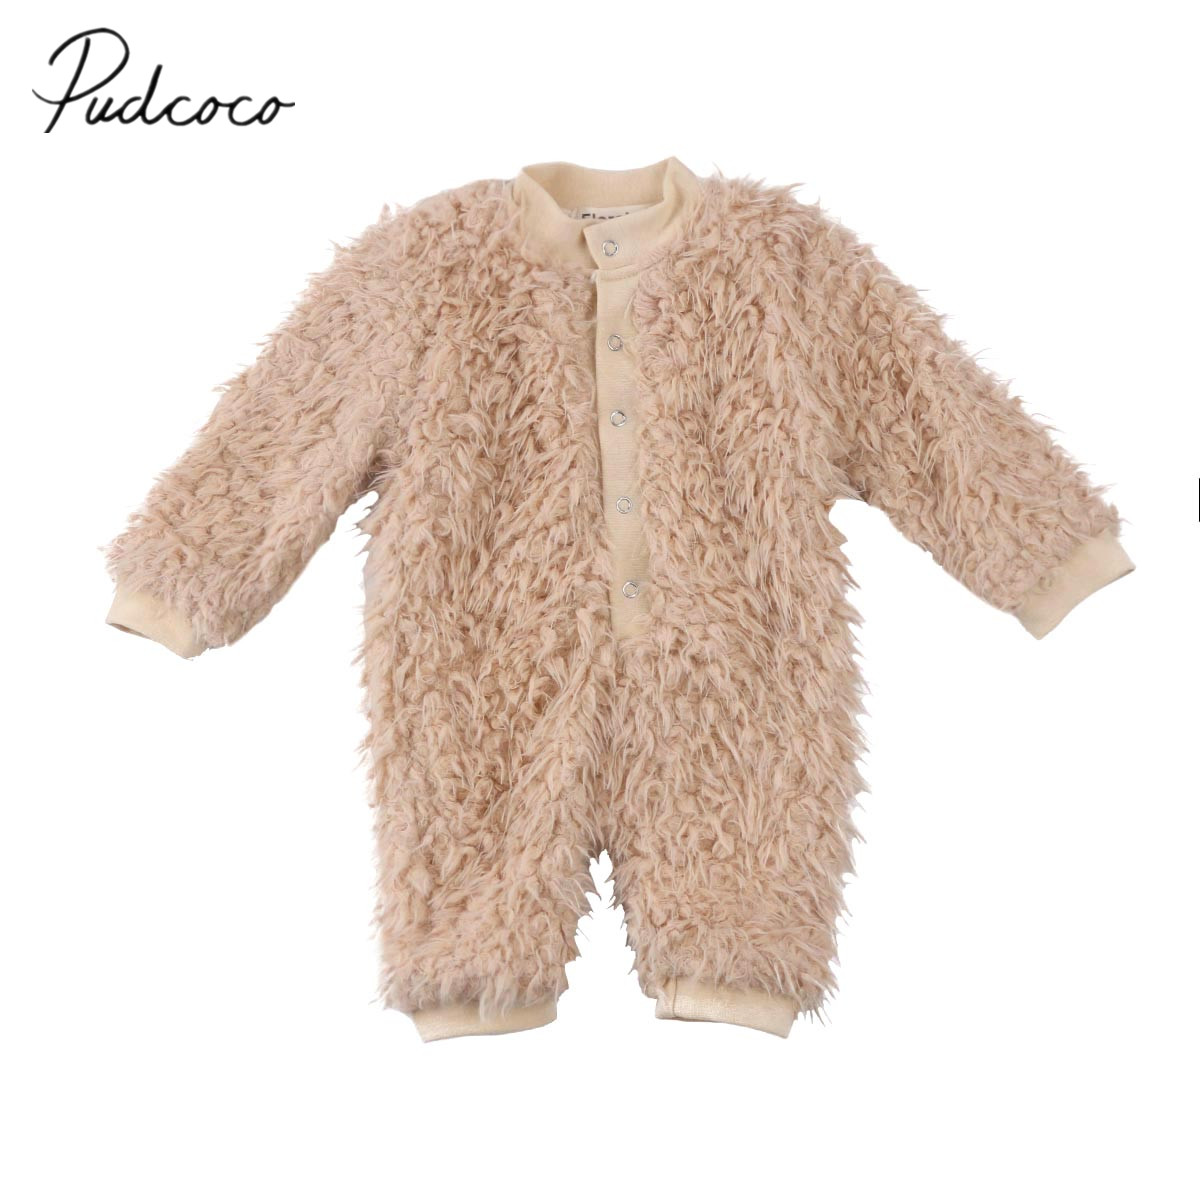 2017 Brand New Newborn Toddler Infant Baby Boys Girls Winter Clothes Fleece Romper Warm Jumpsuit One Pieces Camel Solid Outfits hhtu 2017 infant romper baby boys girls jumpsuit newborn clothing hooded toddler baby clothes cute elk romper baby costumes